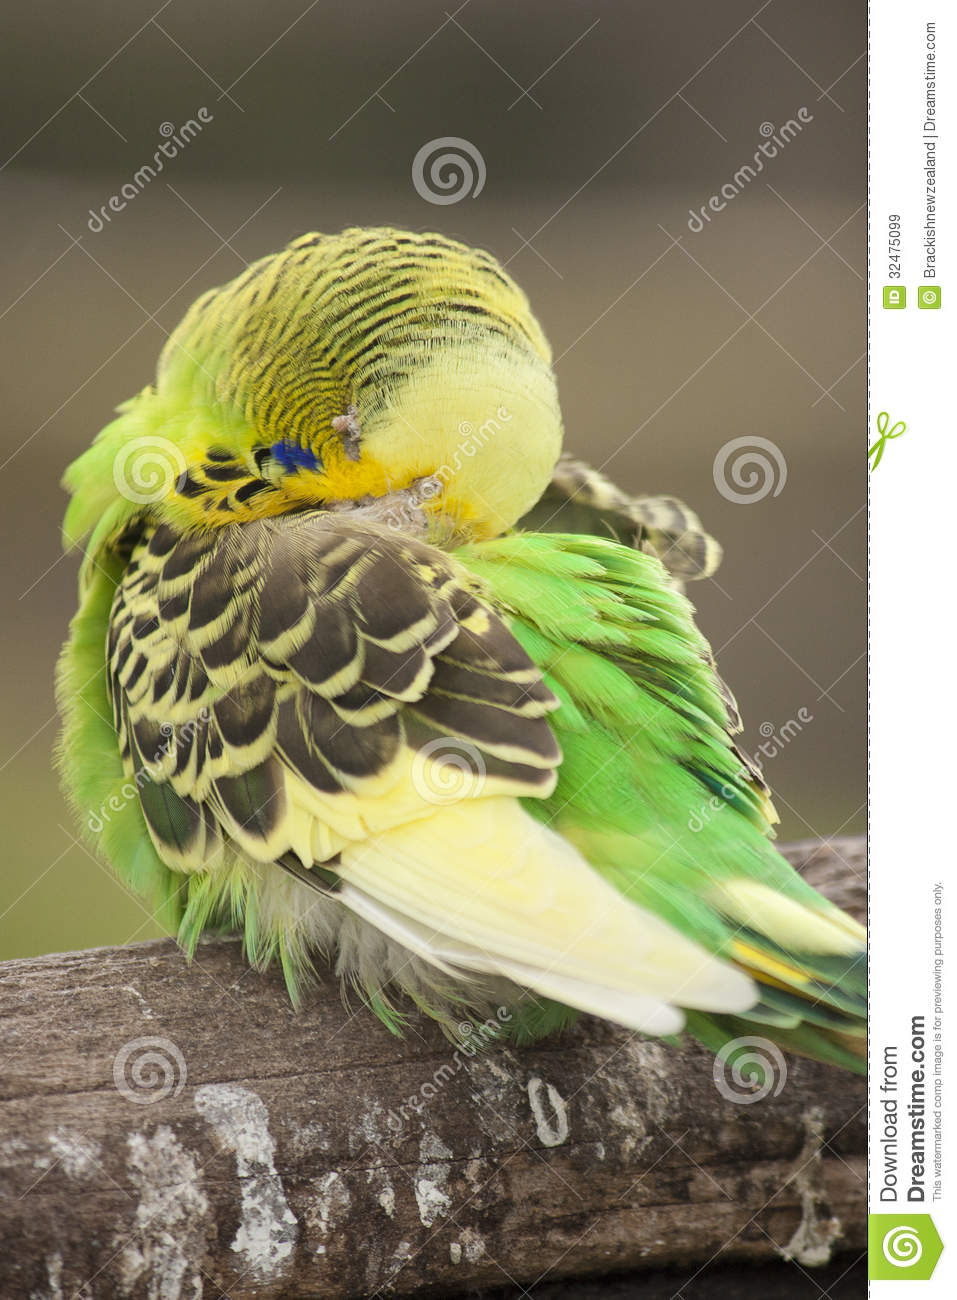 budgie parakeet royalty free stock images image 32475099